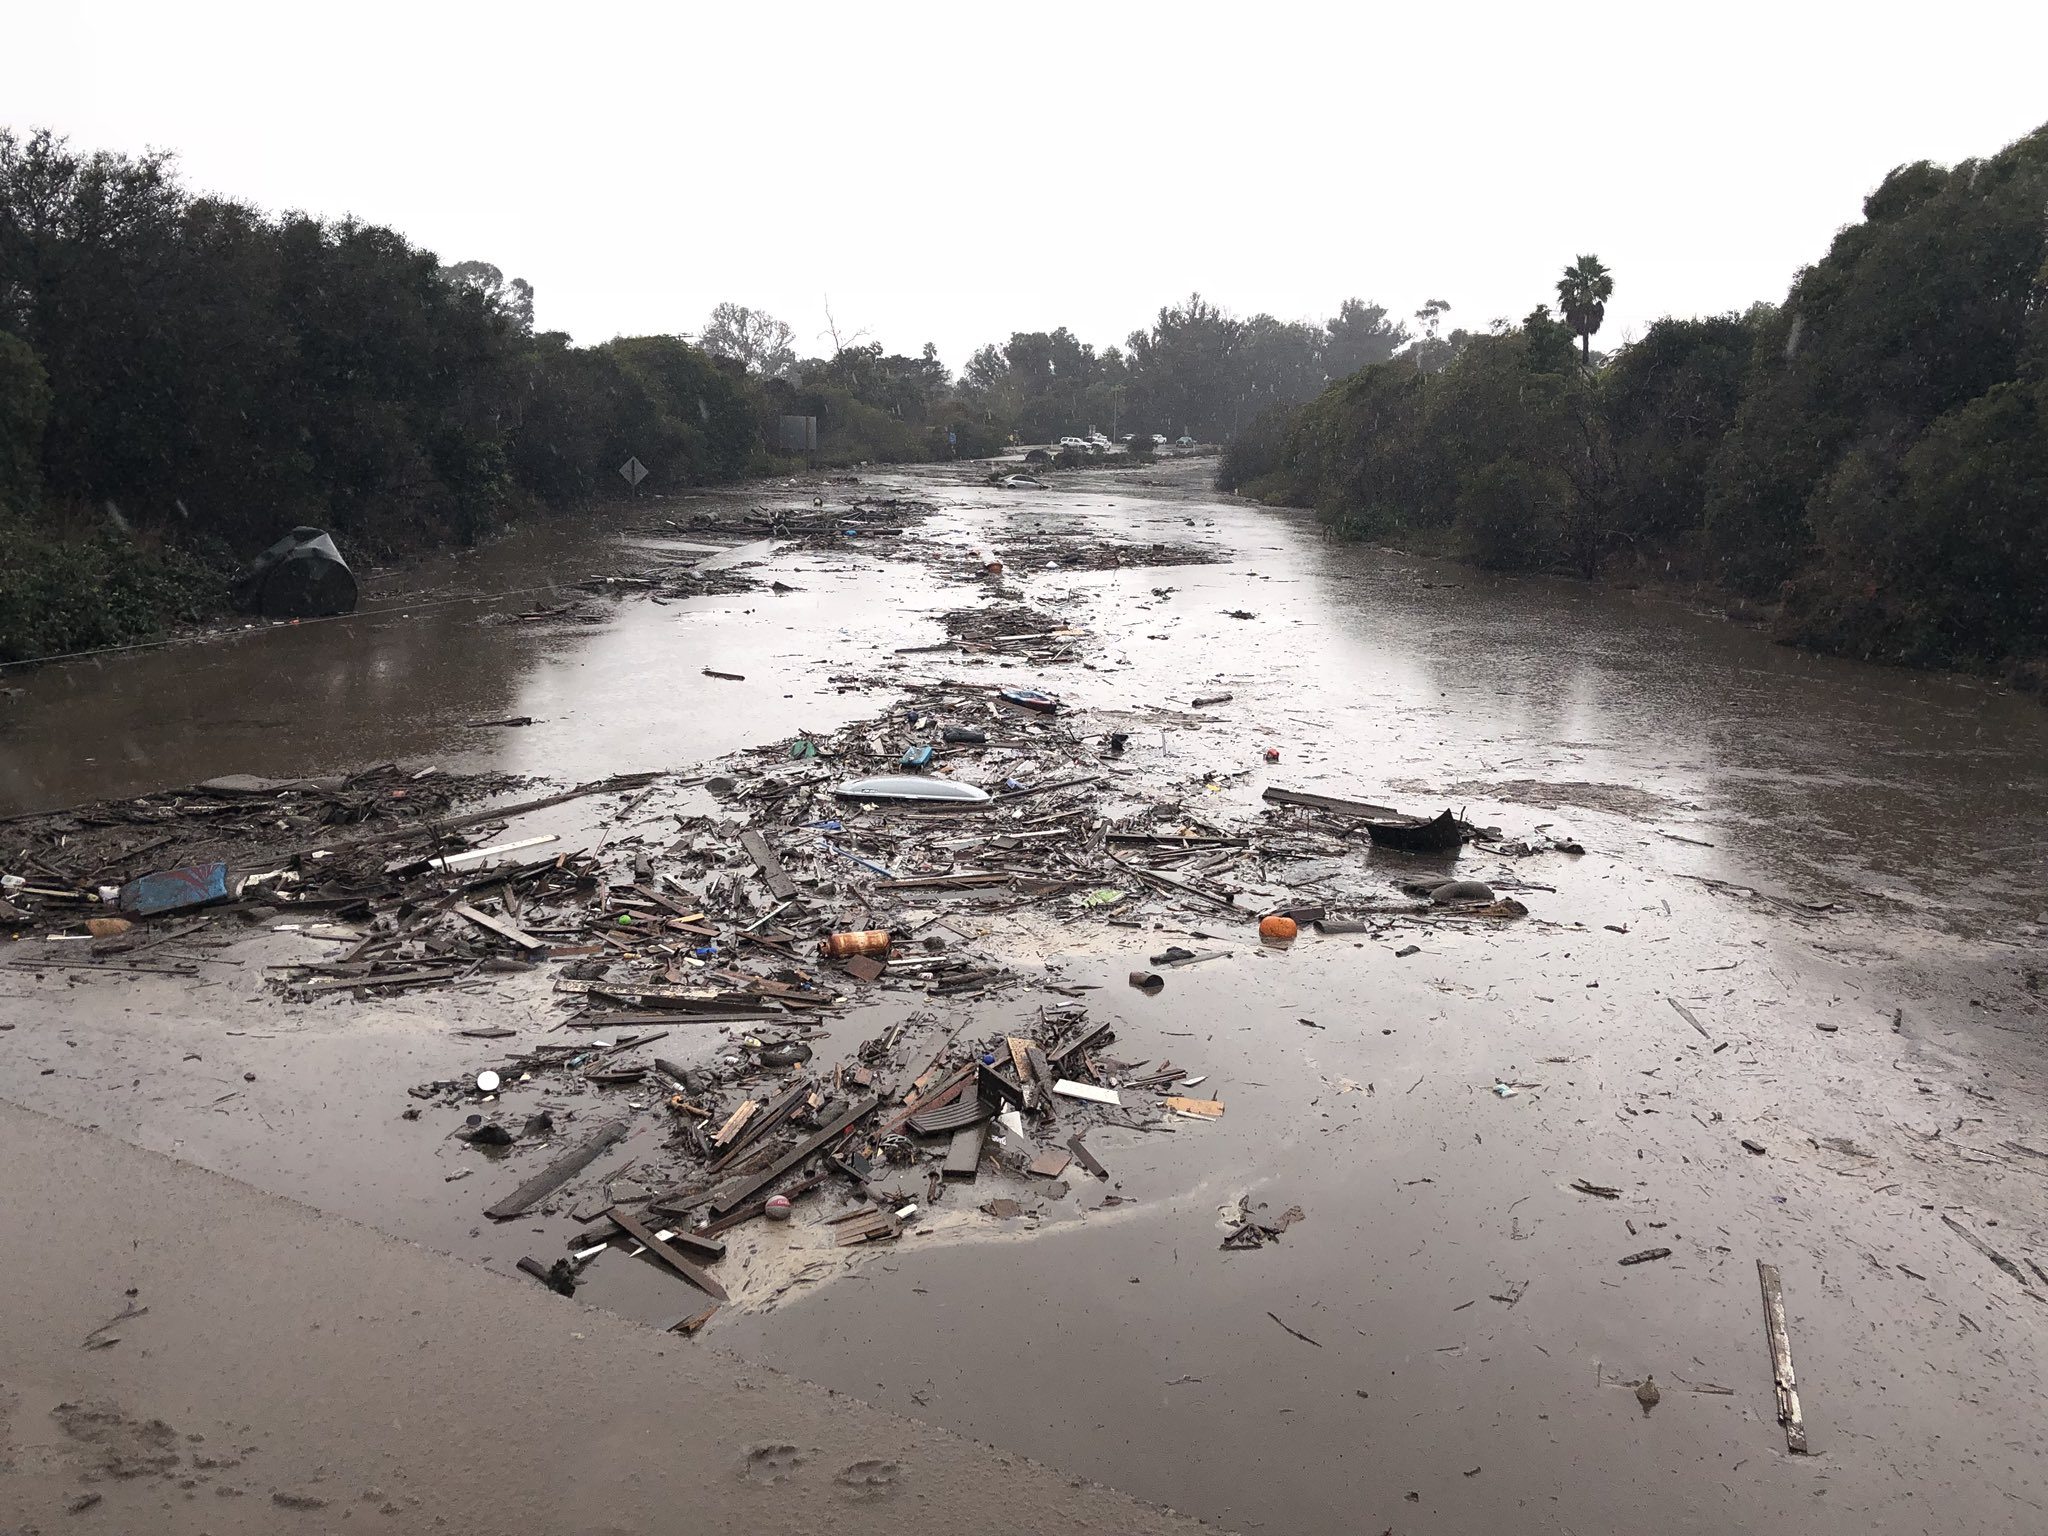 The US 101 Freeway at the Olive Mill Road overpass flooded with runoff water from Montecito Creek. (Photo: Mike Eliason / Santa Barbara County Fire)